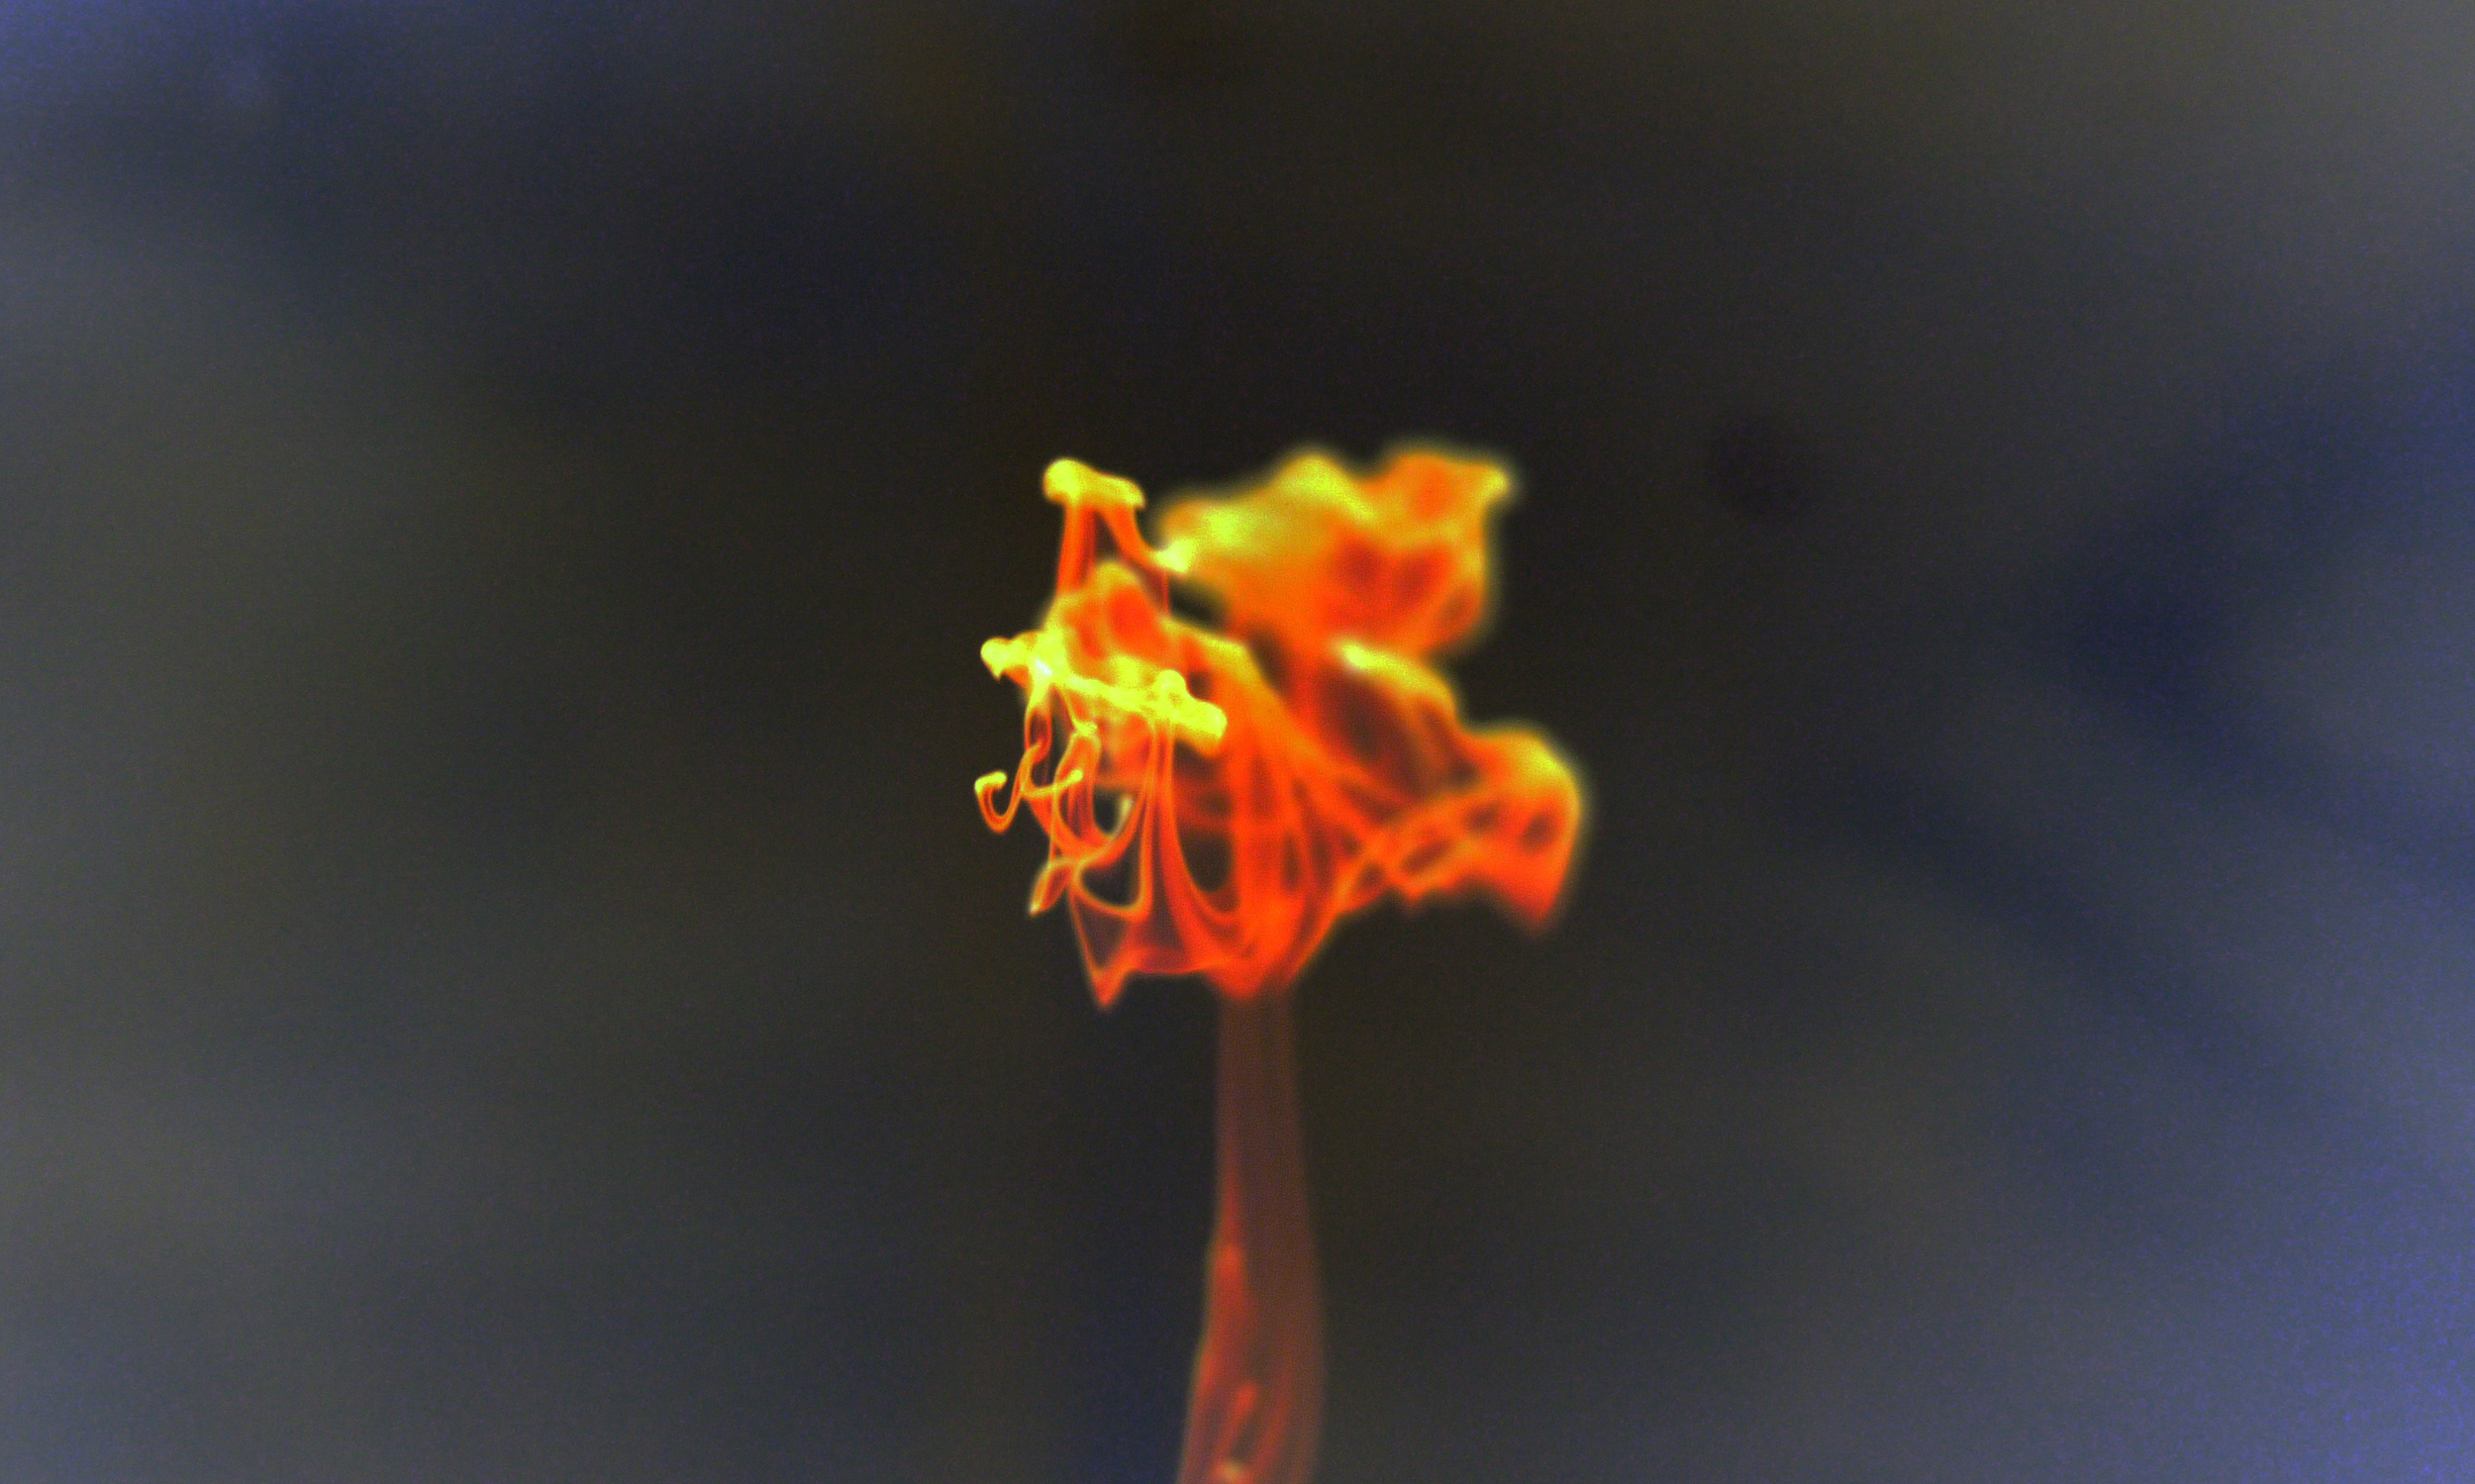 liquid-fire-explosion-lava-free-stock-photo-2